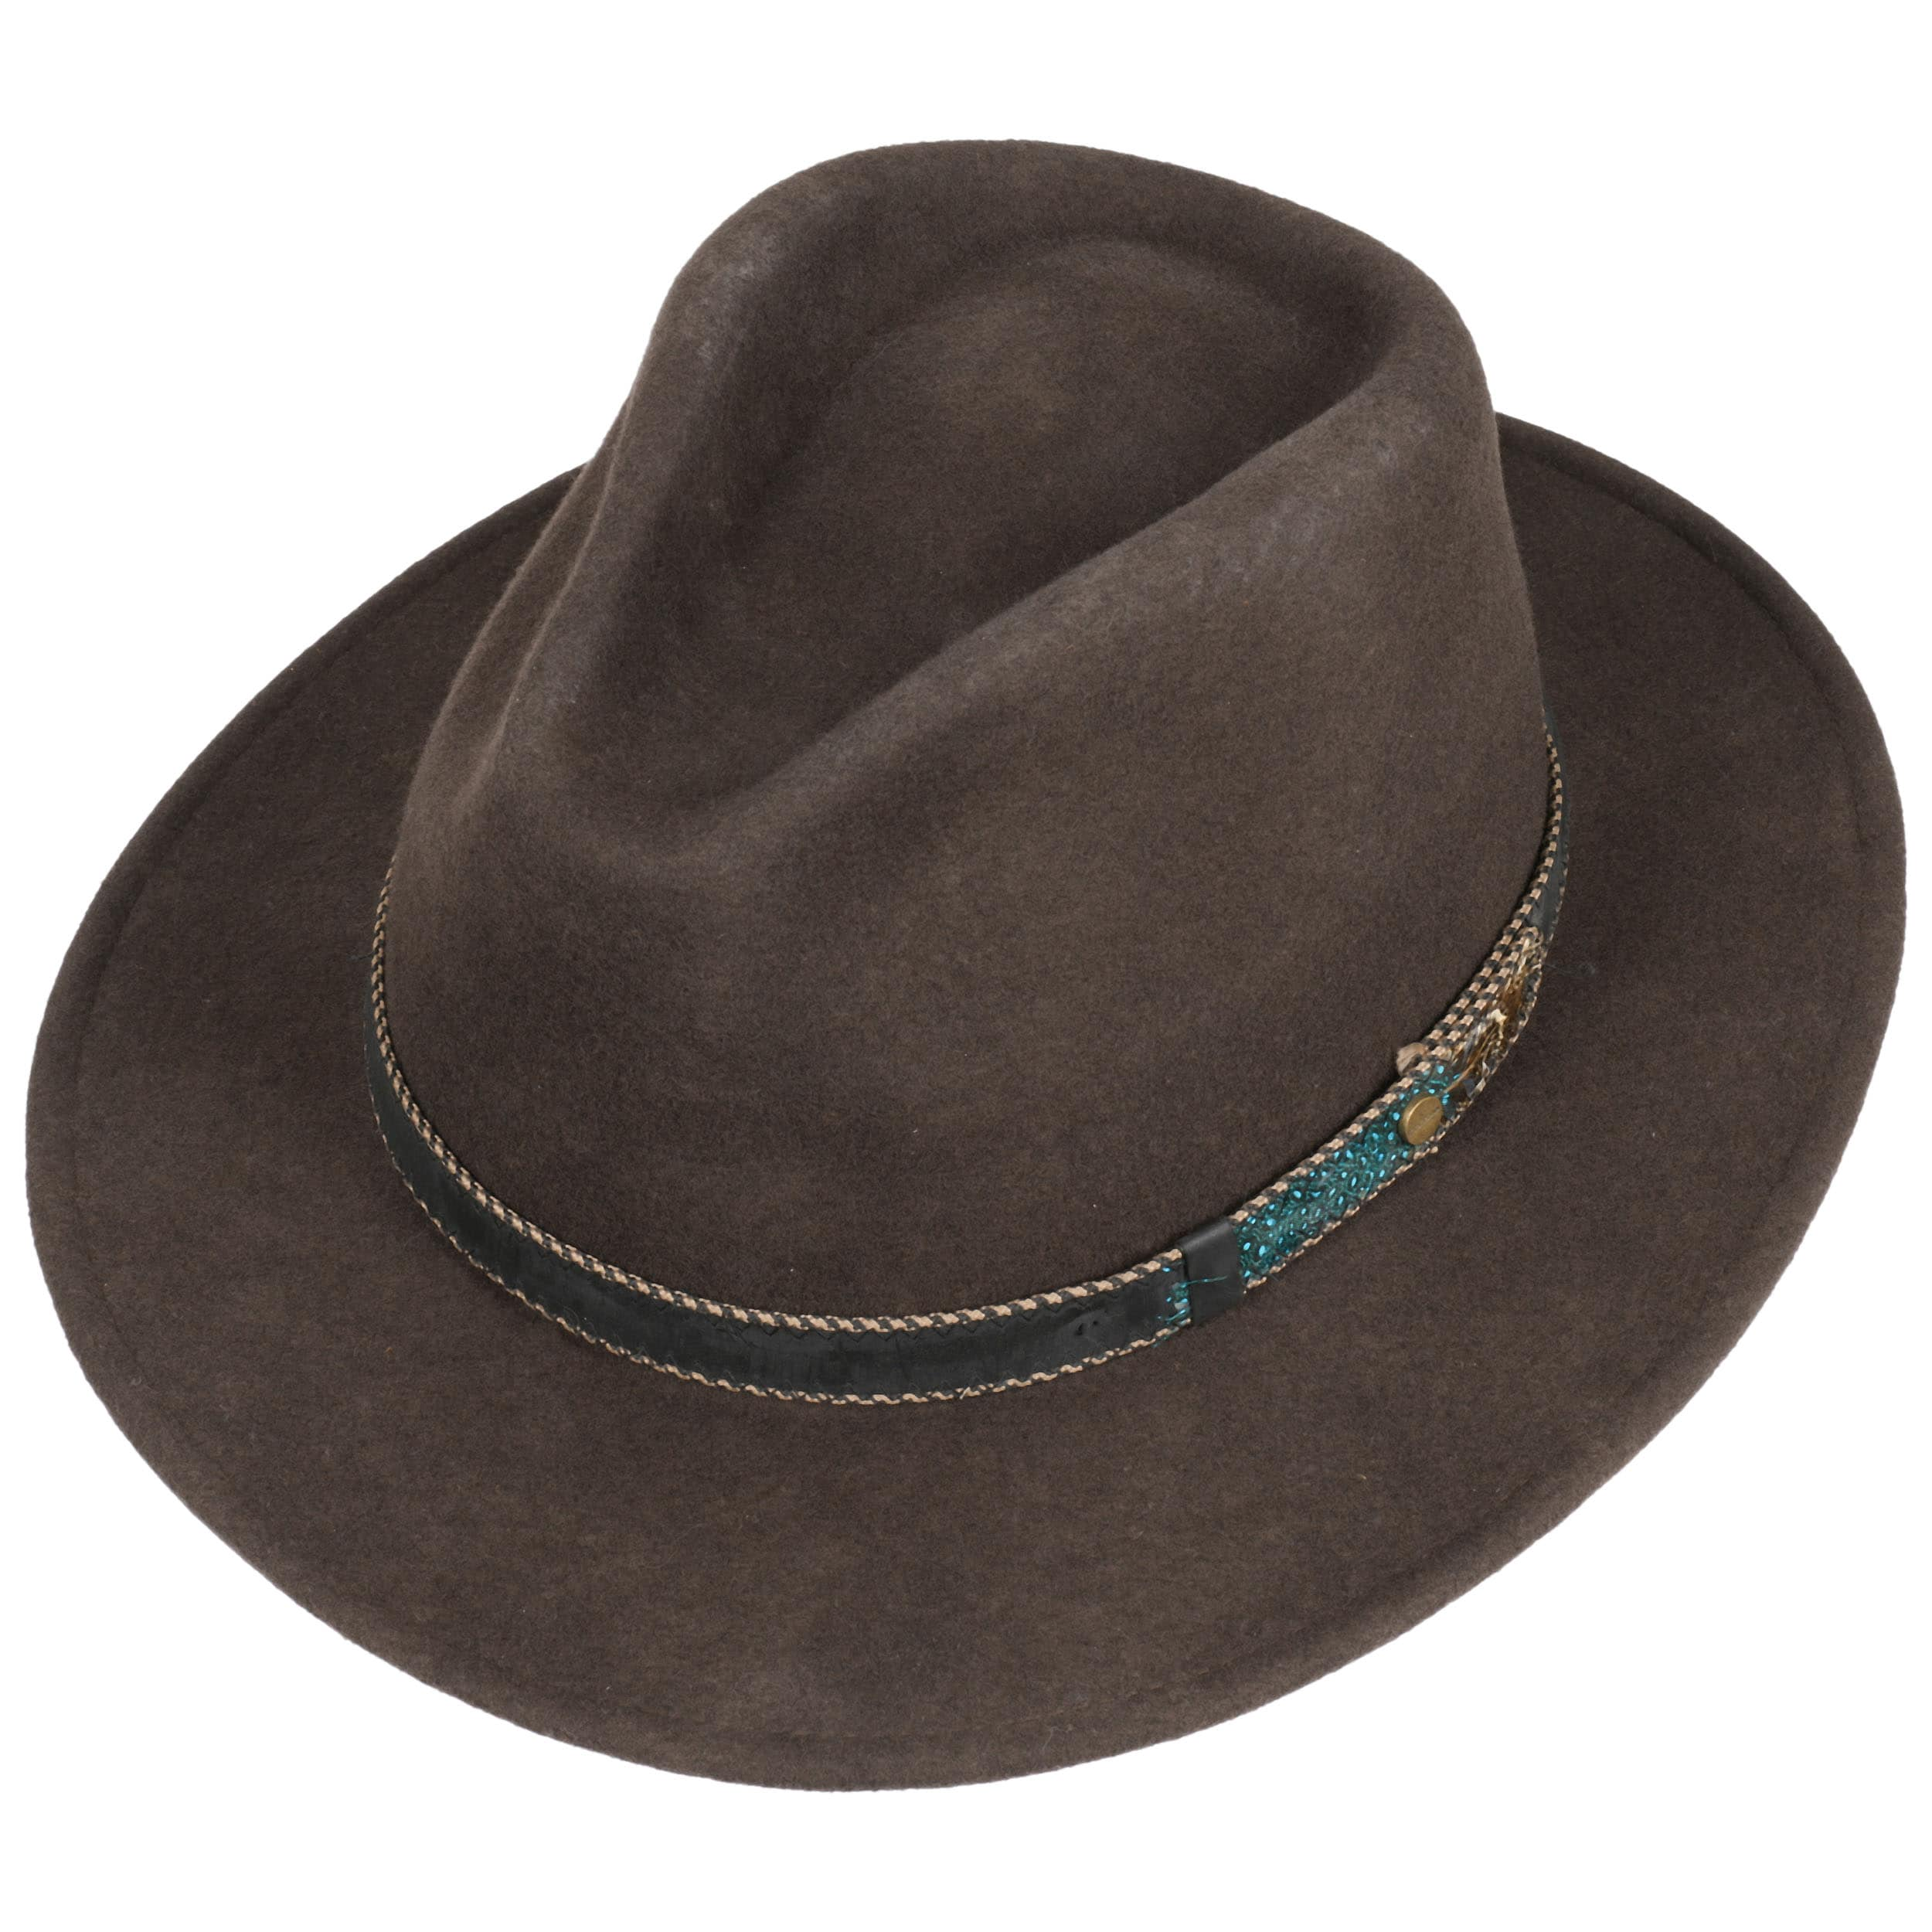 d77184c68b0dc Willows Outdoor Wool Felt Hat By Stetson